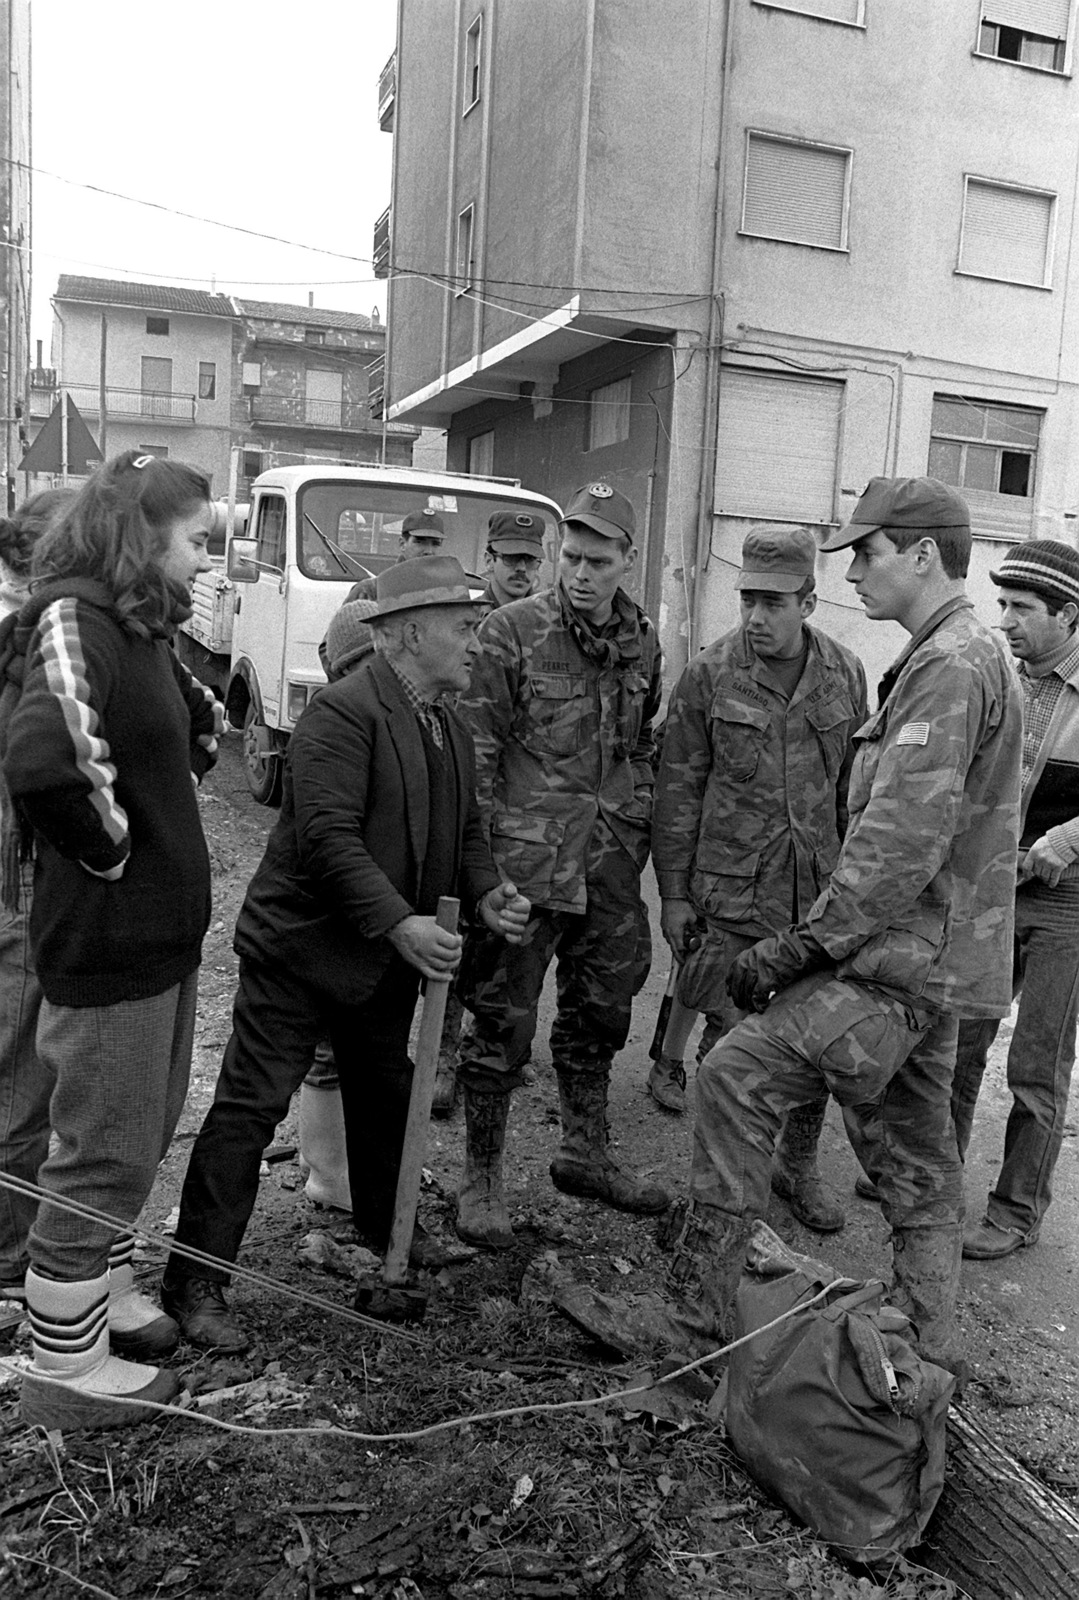 Army personnel from 1ST Battalion, 509th Infantry Regiment, Vicenza, listen as a local citizen asks for tent stakes. The men are helping after a major earthquake on November 23